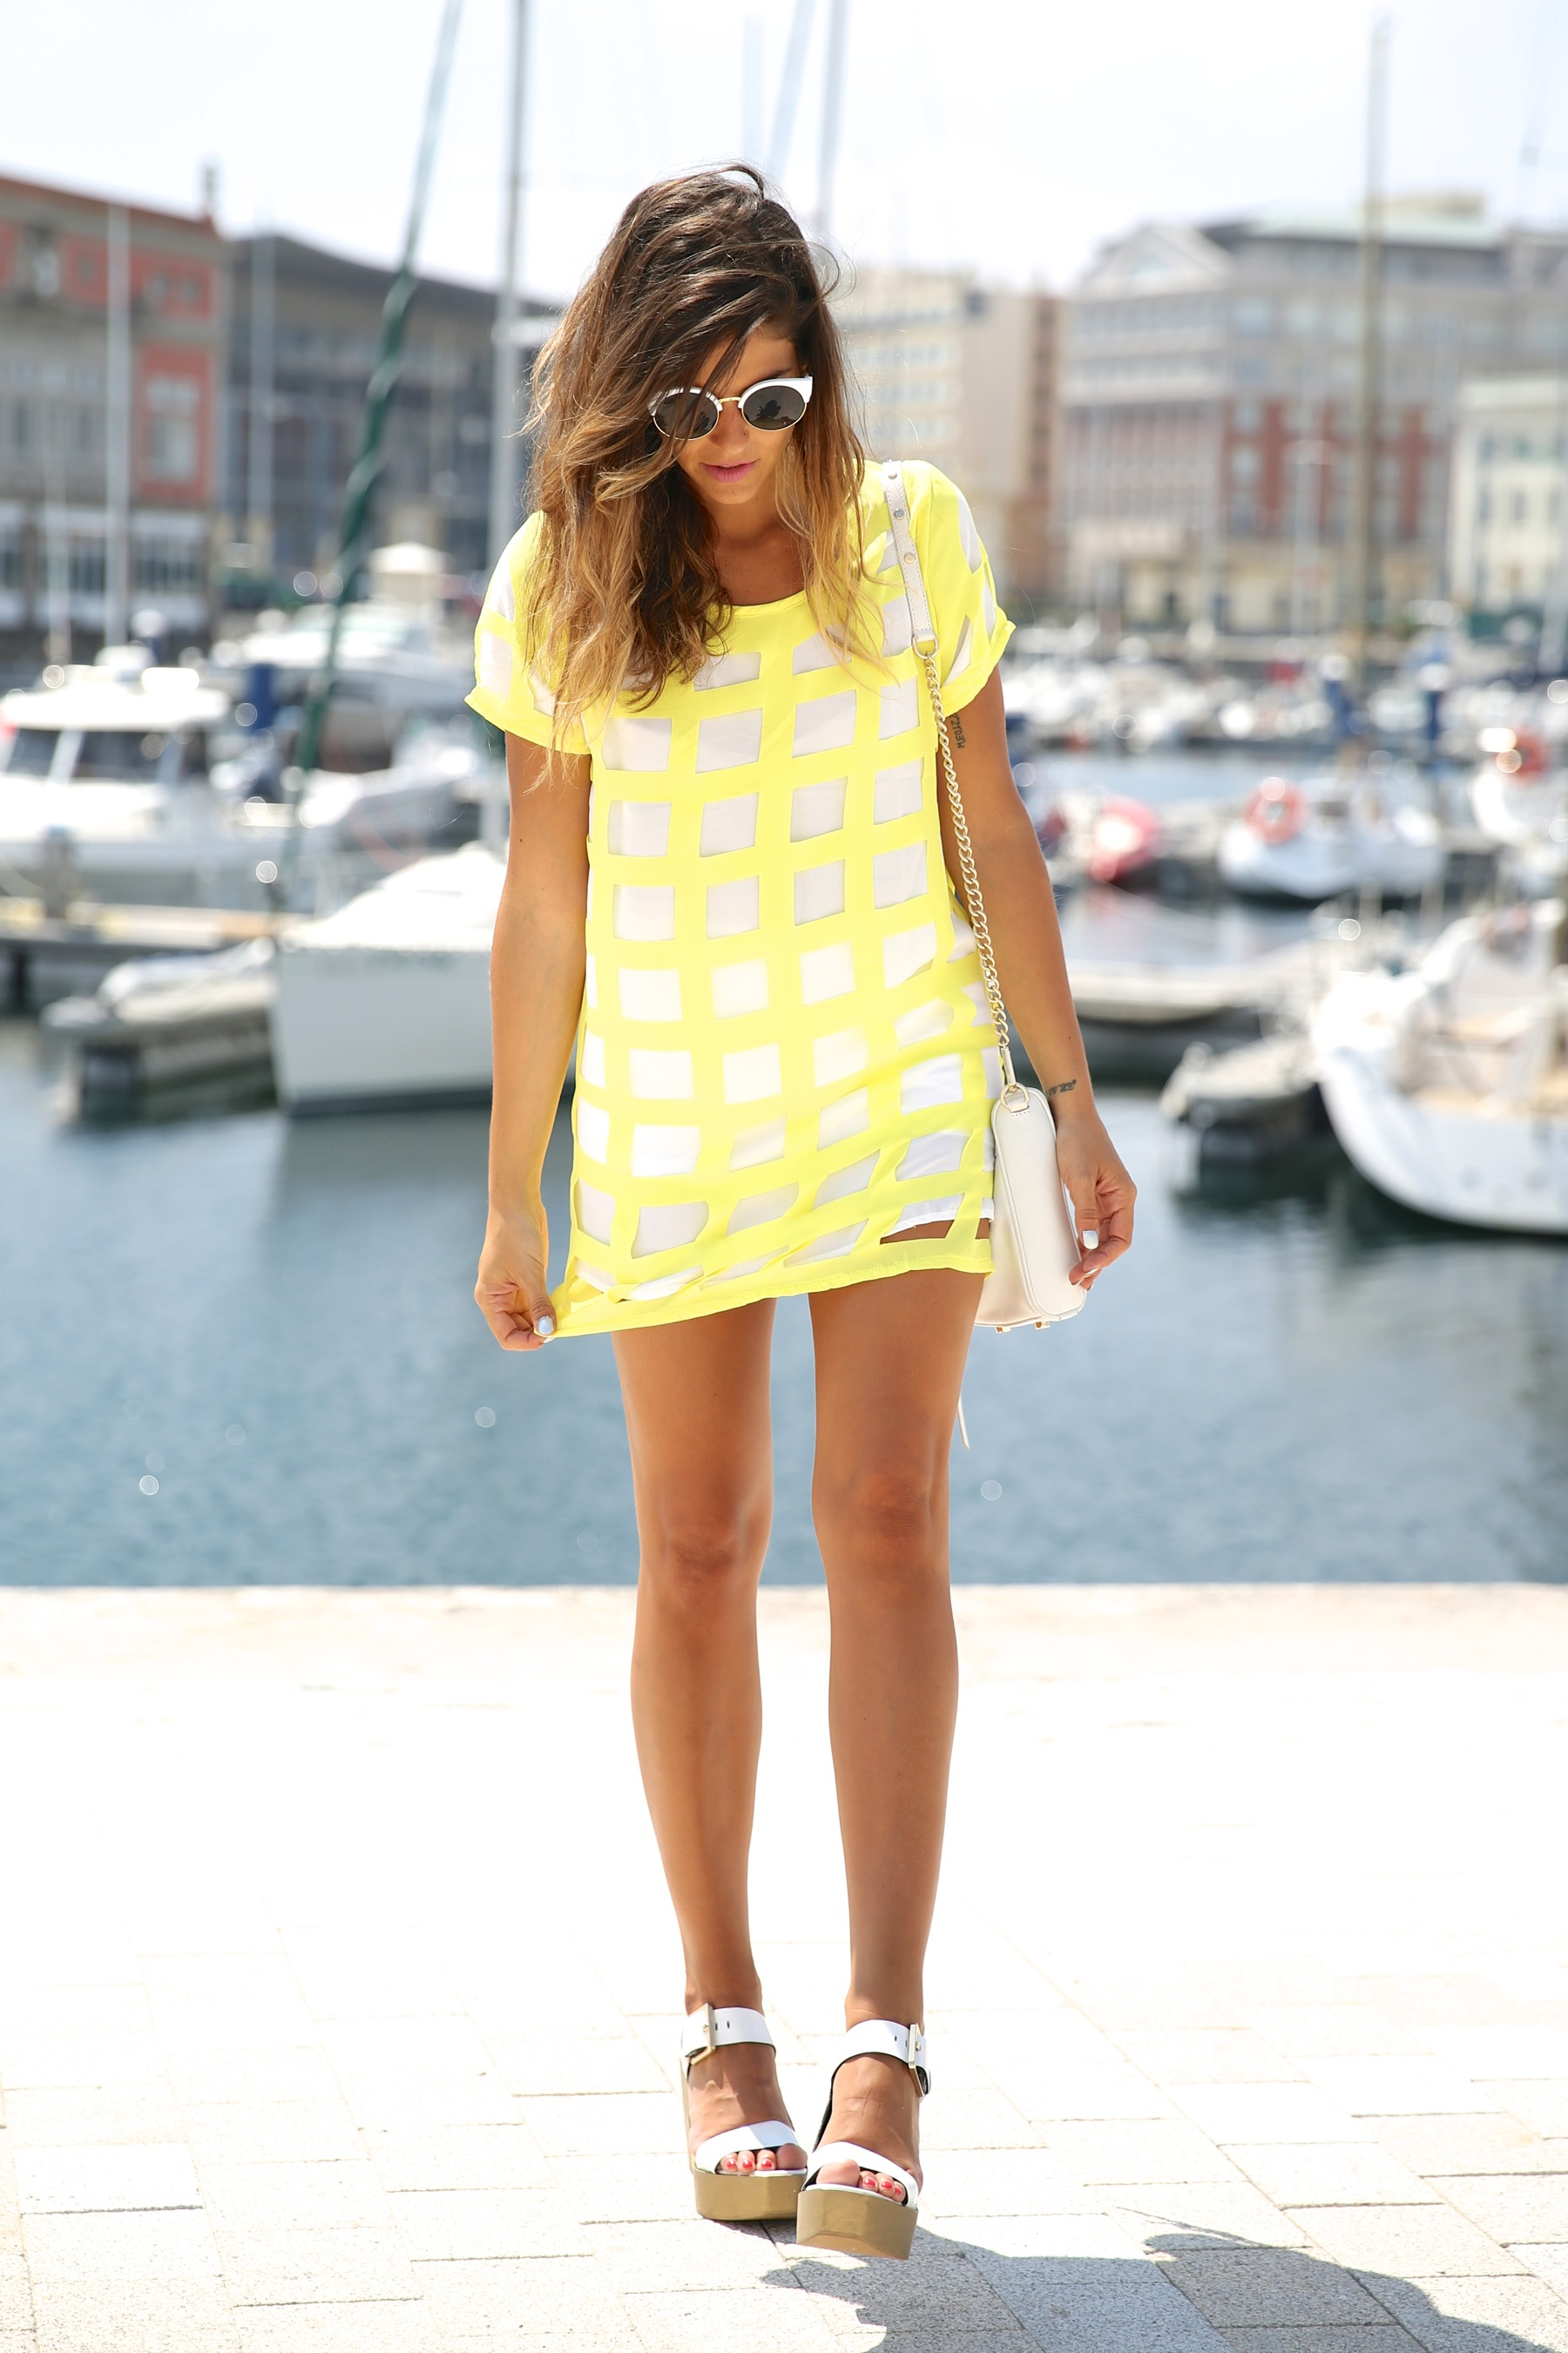 trendy_taste-look-outfit-street_style-ootd-blog-blogger-moda_españa-fashion_spain-coruña-galicia-sandalias_plataforma-platform_sandals-rebecca_minkoff-yellow-amarillo-vestido-dress-plaid-cuadros-10